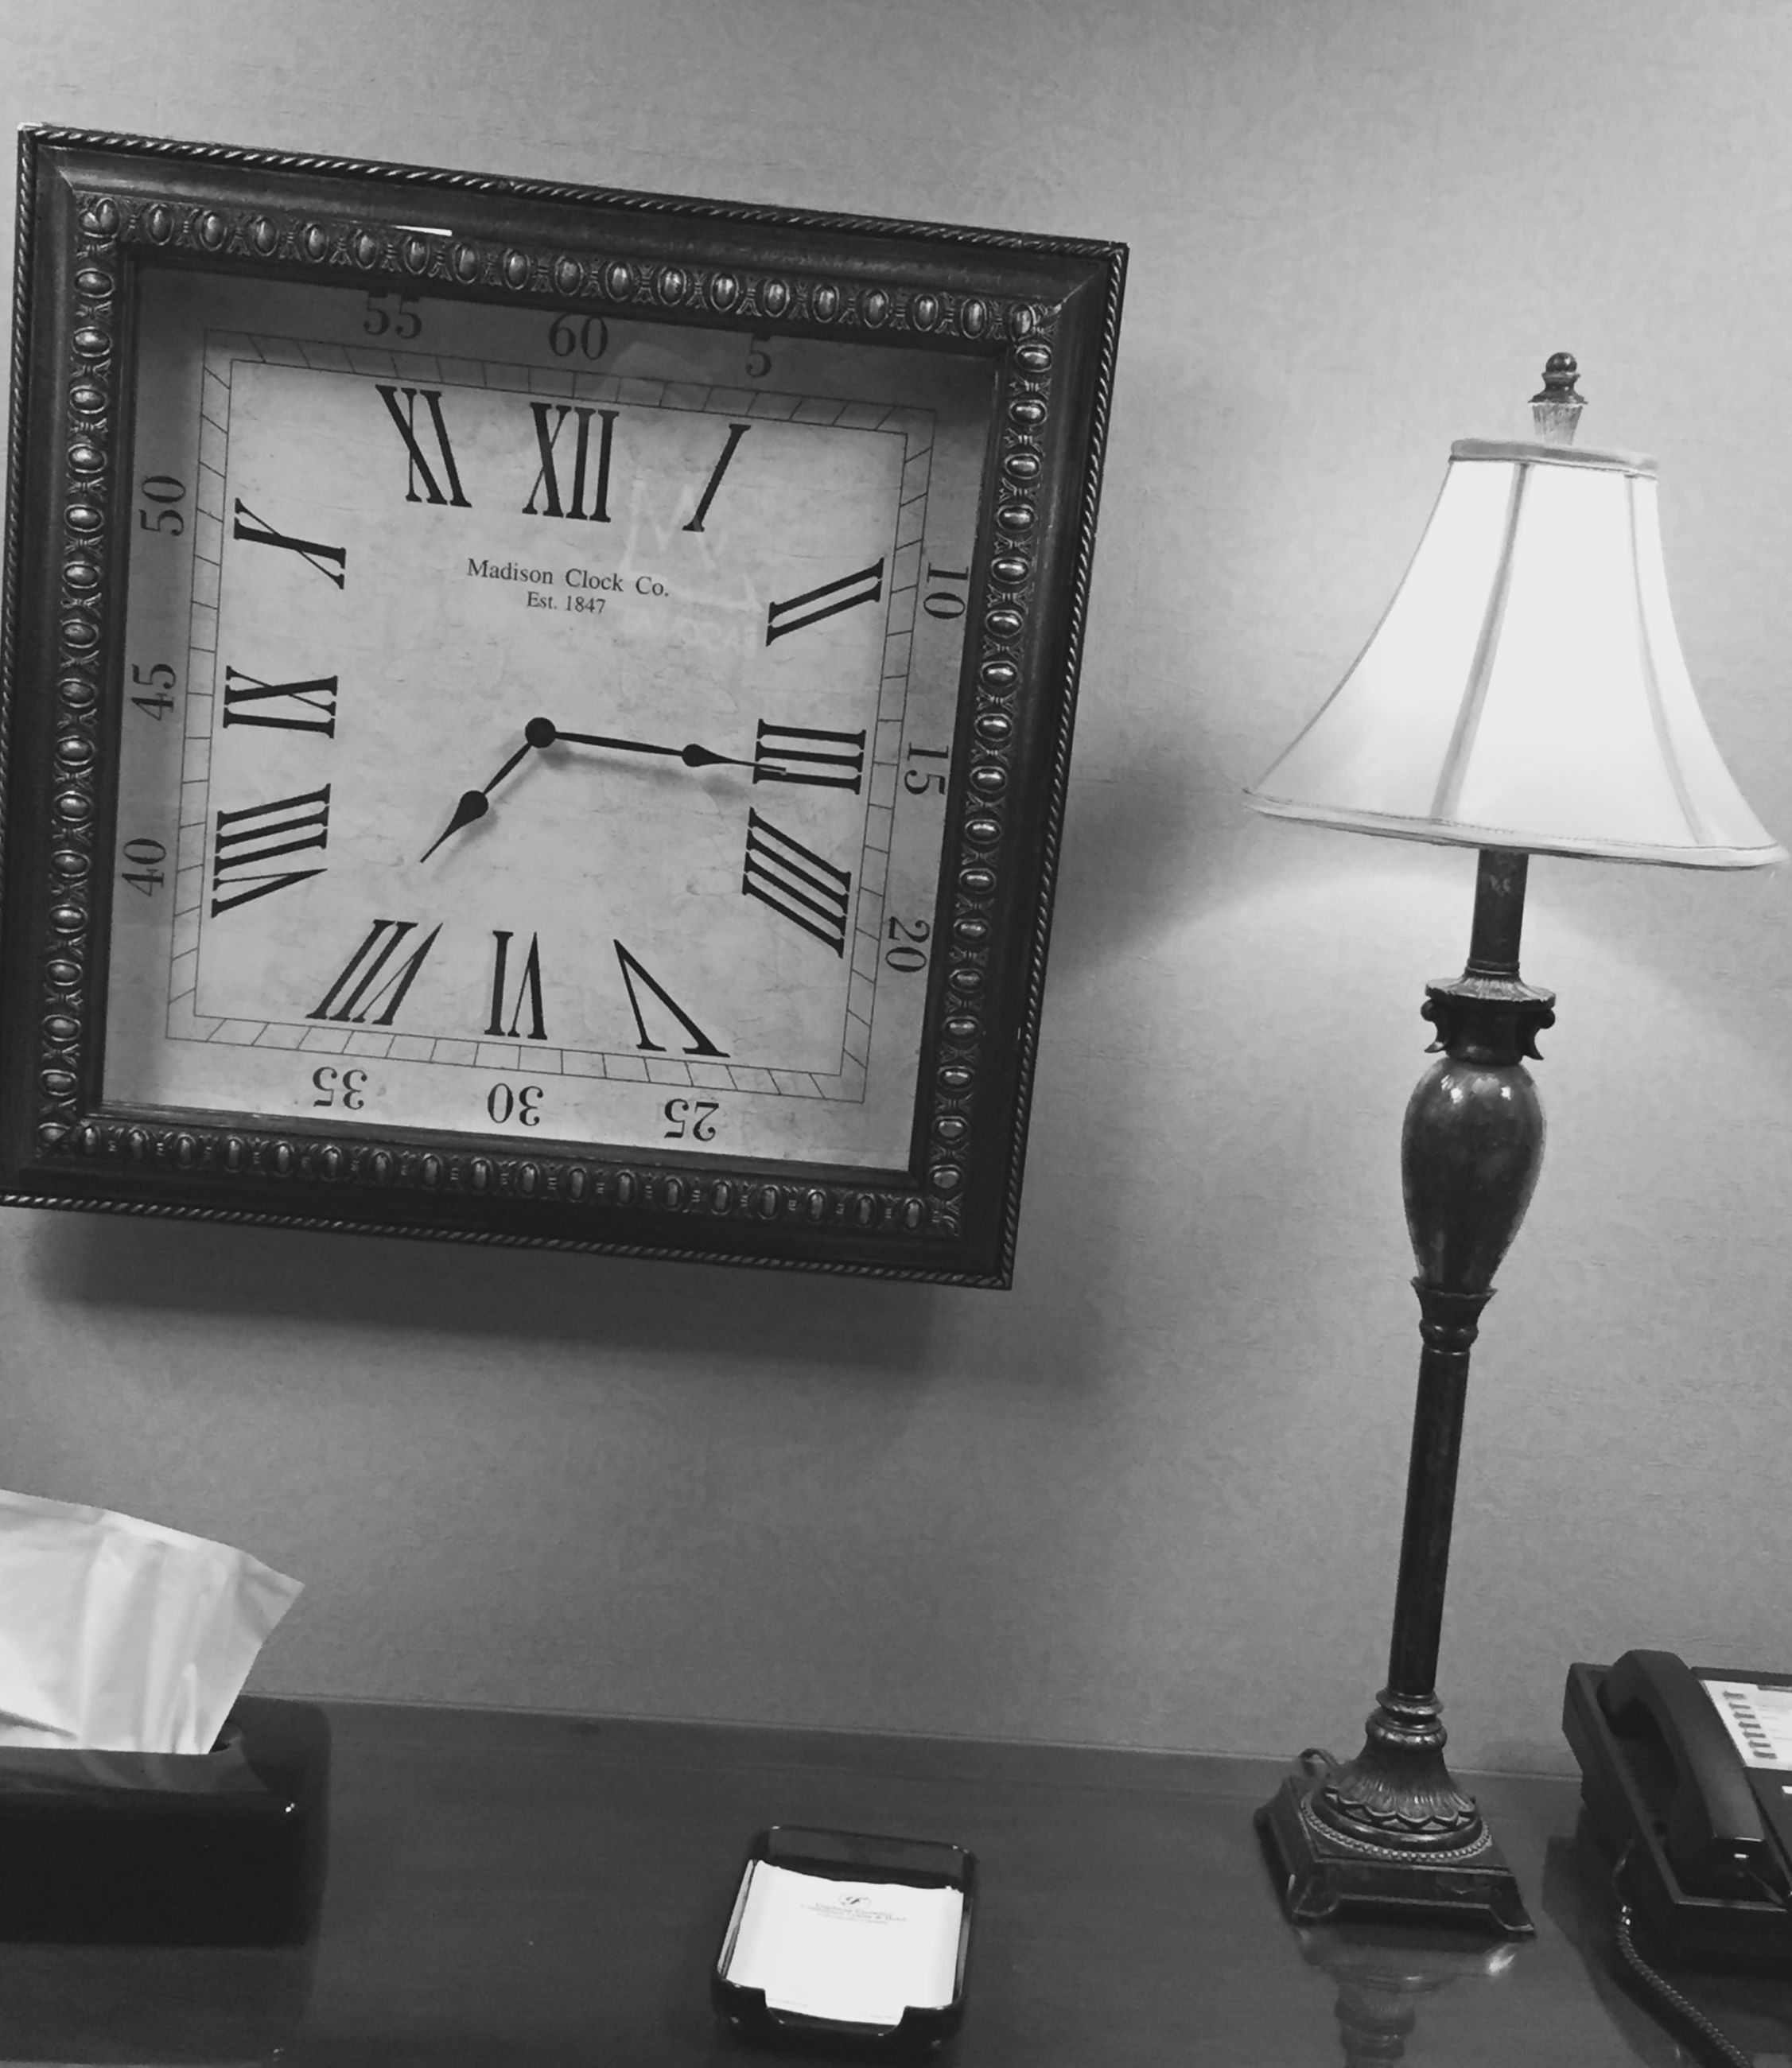 communication, text, indoors, western script, clock, table, time, close-up, lighting equipment, no people, accuracy, still life, guidance, number, wall - building feature, paper, information sign, sign, low angle view, non-western script